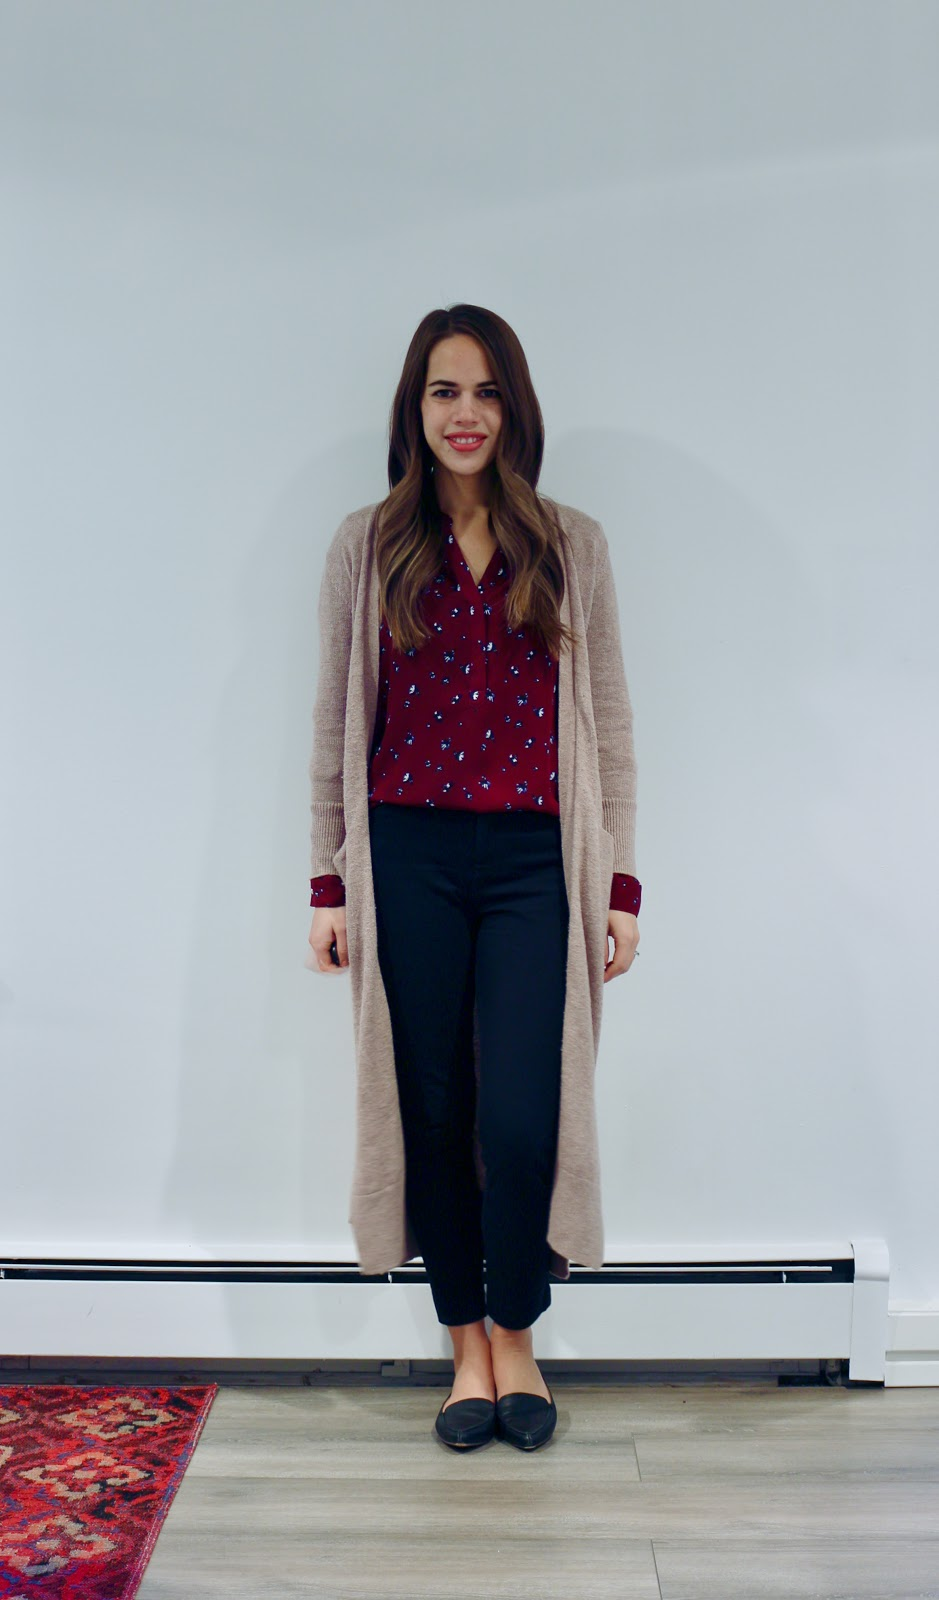 Jules in Flats - Super Long Open Front Sweater (Business Casual Fall Workwear on a Budget)